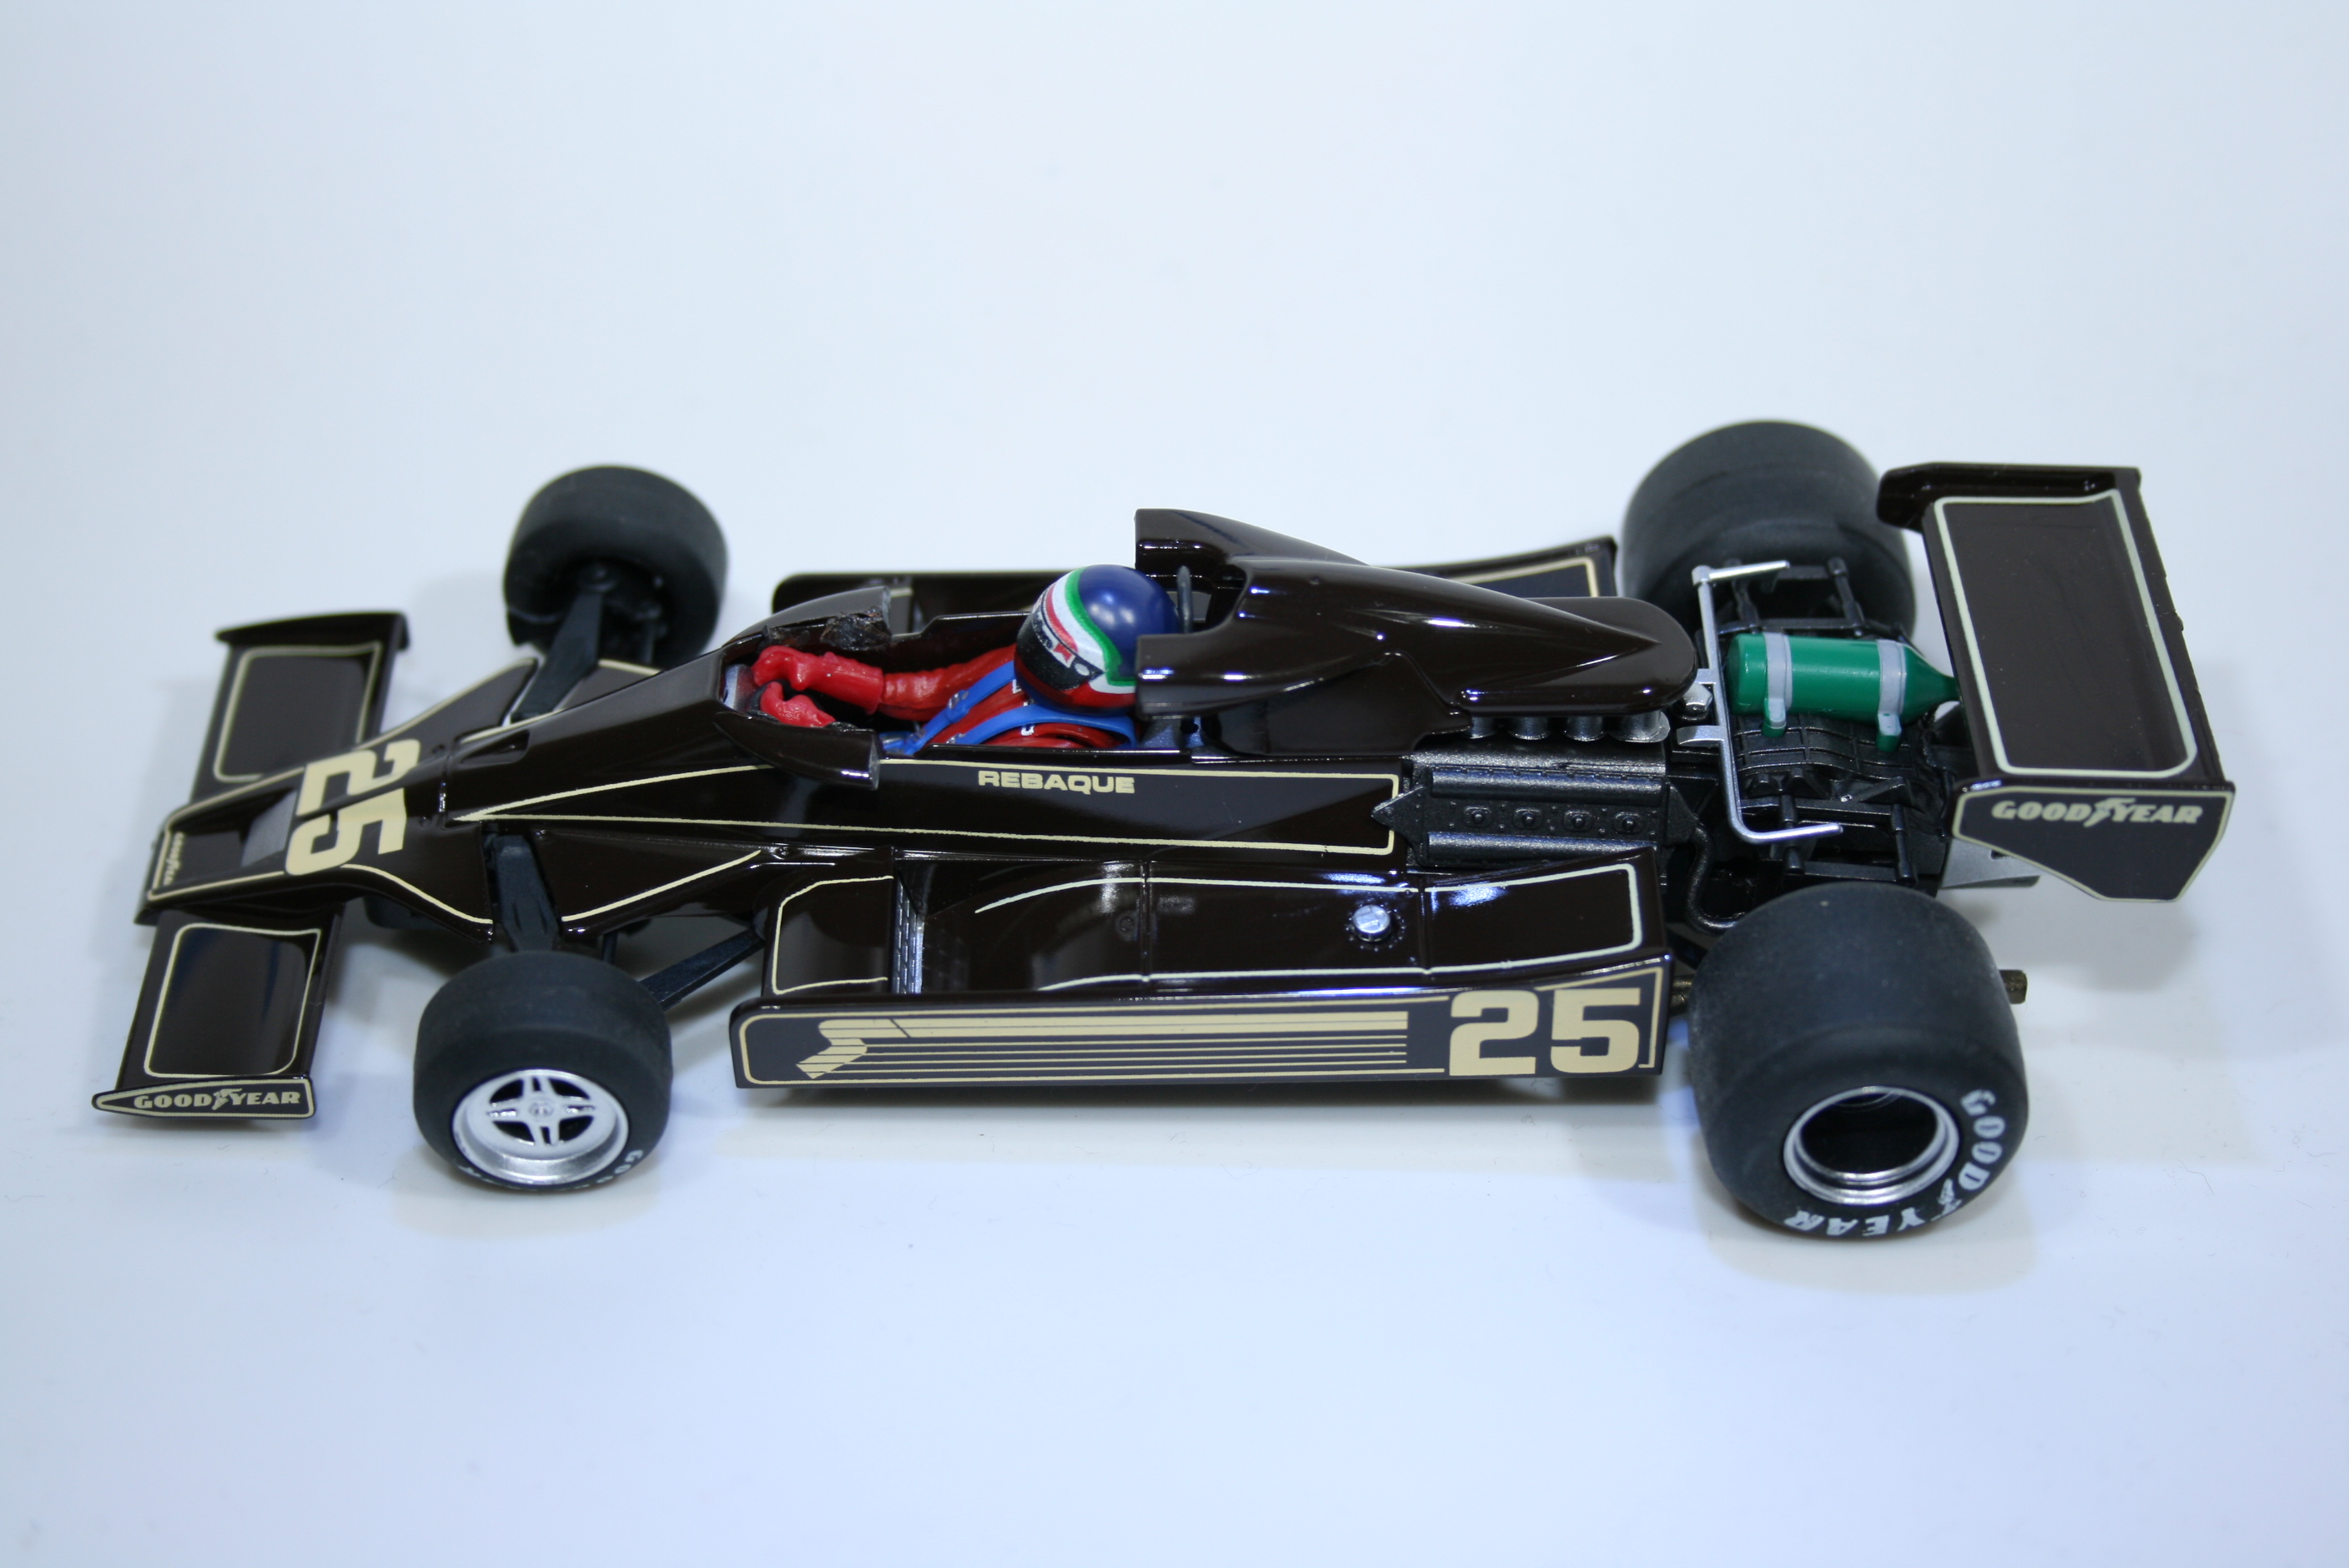 691 Lotus 78 1978 H Rebaque FLY 58301 2012 Boxed